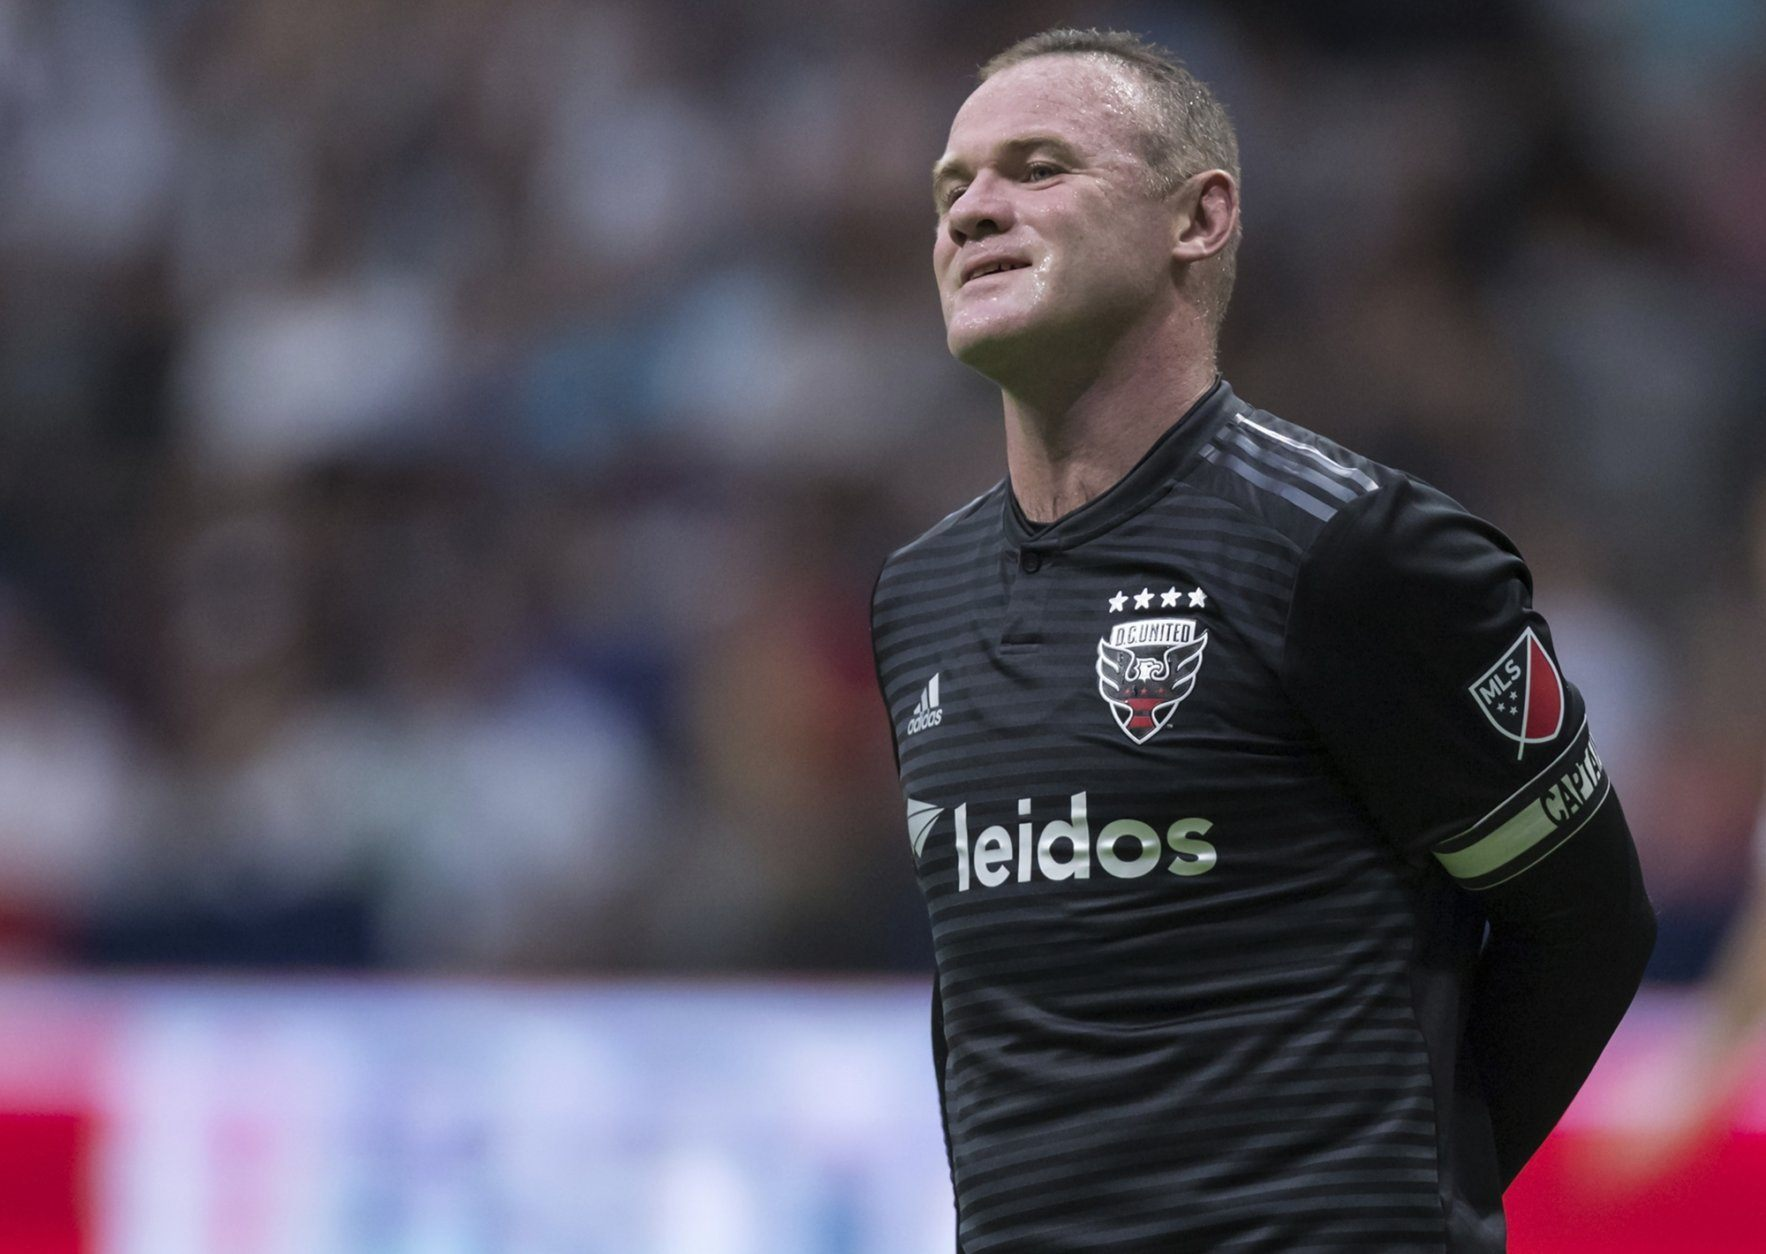 """<p style=""""text-align: center;""""><strong>4 p.m.: D.C. United vs. FC Cincinnati, regular season finale</strong></p> <p>With the new MLS playoff structure this season, there are no more home-and-home series. The top seed in each conference gets a bye, while seeds 2-4 host seeds 5-7 in single elimination matches.</p> <p>Right now, D.C. United is in fourth place in the Eastern Conference, by just a point, needing a win in their regular season finale Sunday at Audi Field to guarantee themselves home field in the first round.</p> <p>Adding to that pressure is the fact that they'll be without Wayne Rooney, who picked up a cumulative yellow card suspension for the match.</p> <p>So, in order for the Washington fans to get another chance to see Rooney play at Audi Field before he returns to England, United likely needs to win Sunday to keep NYRB (one point back) and Toronto FC (two points back) at bay.</p>"""